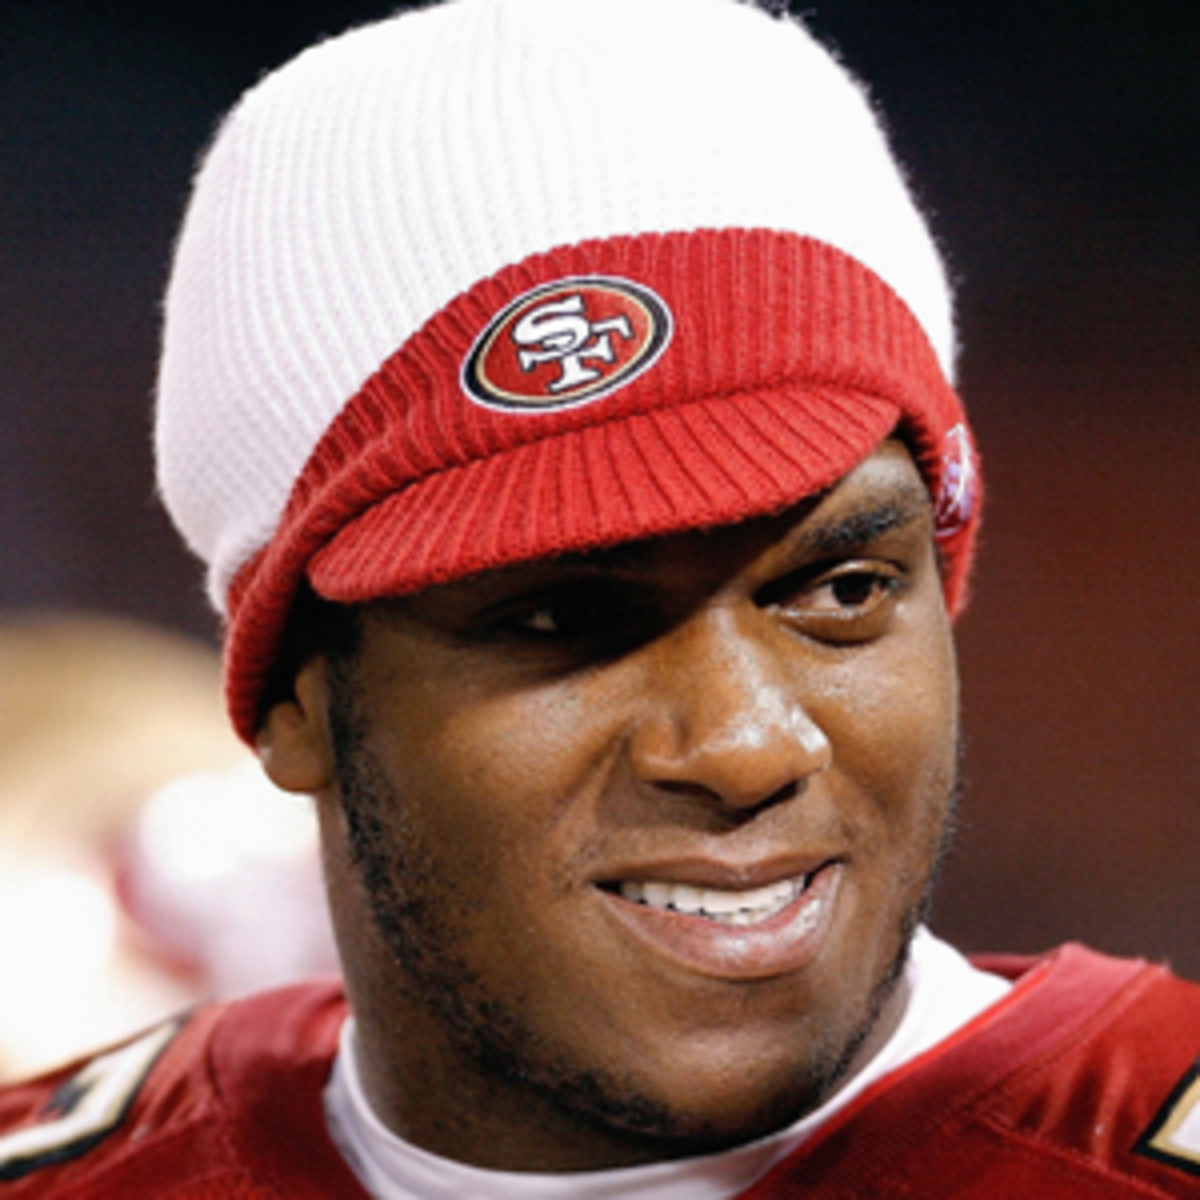 Kwame Harris played for the 49ers from 2003-2007. (Greg Trott/Getty Images)